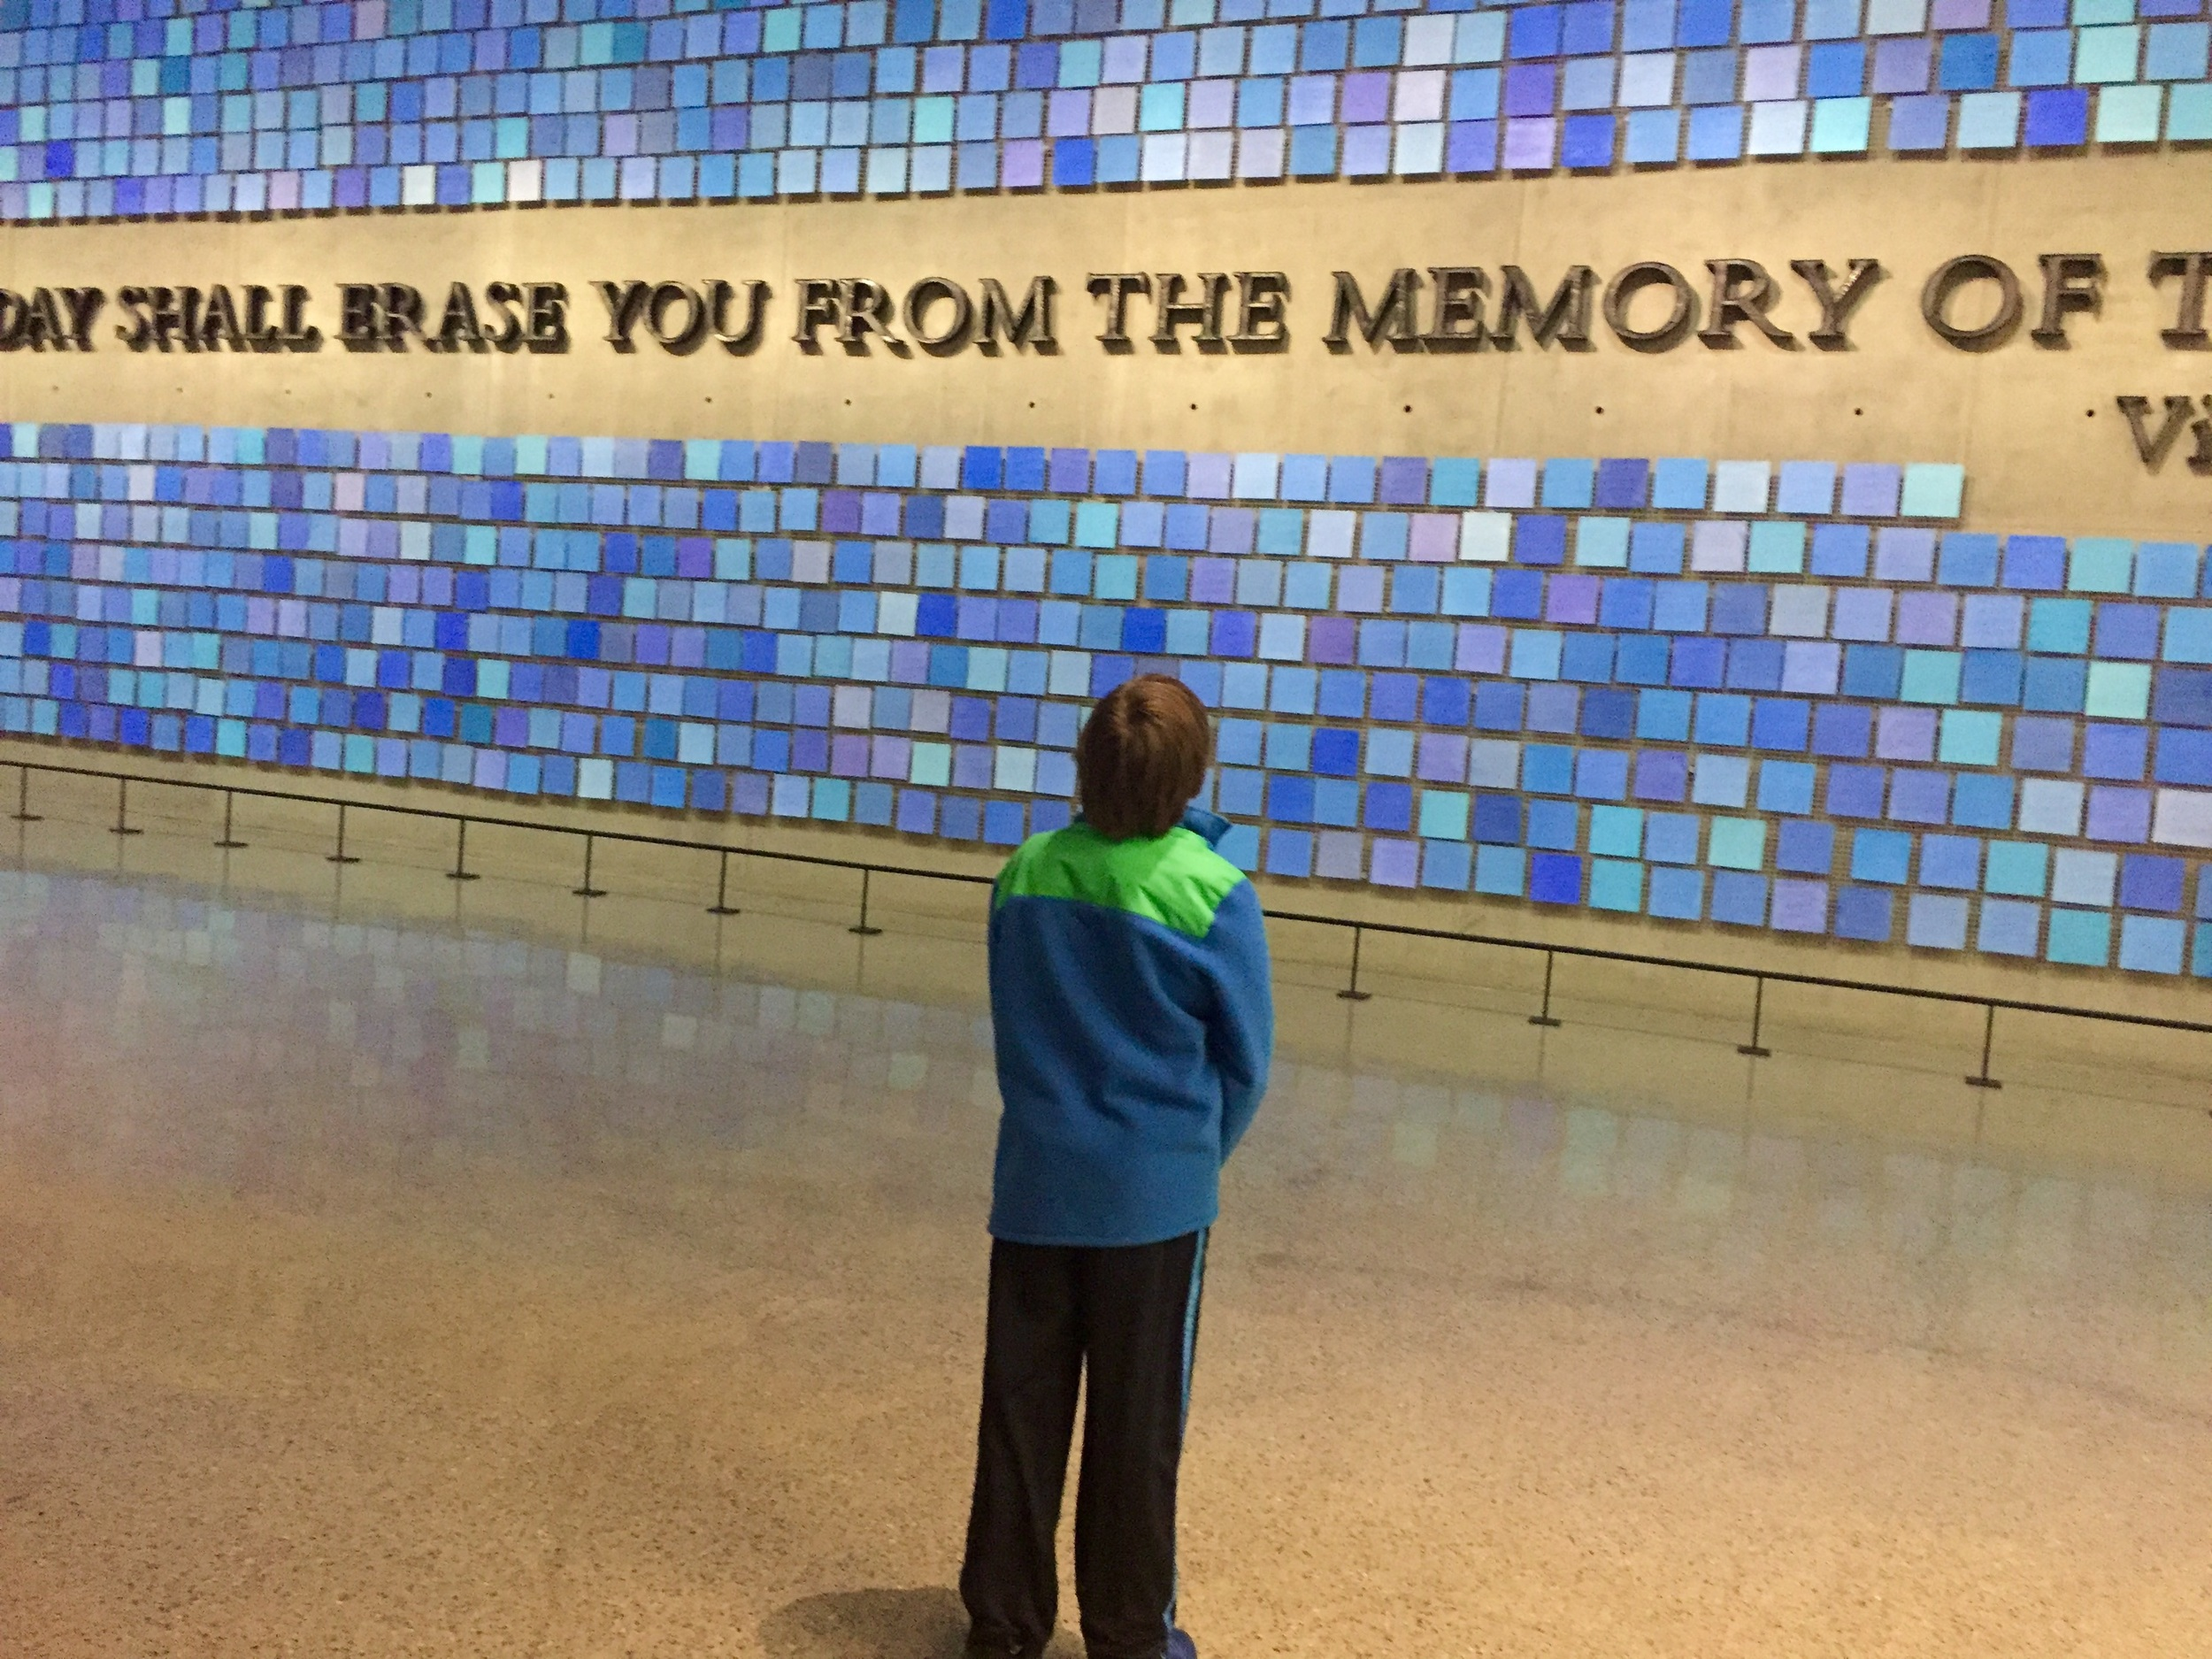 The 9/11 Museum and Memorial. All photographs property of The Entertaining House/Jessica Gordon Ryan